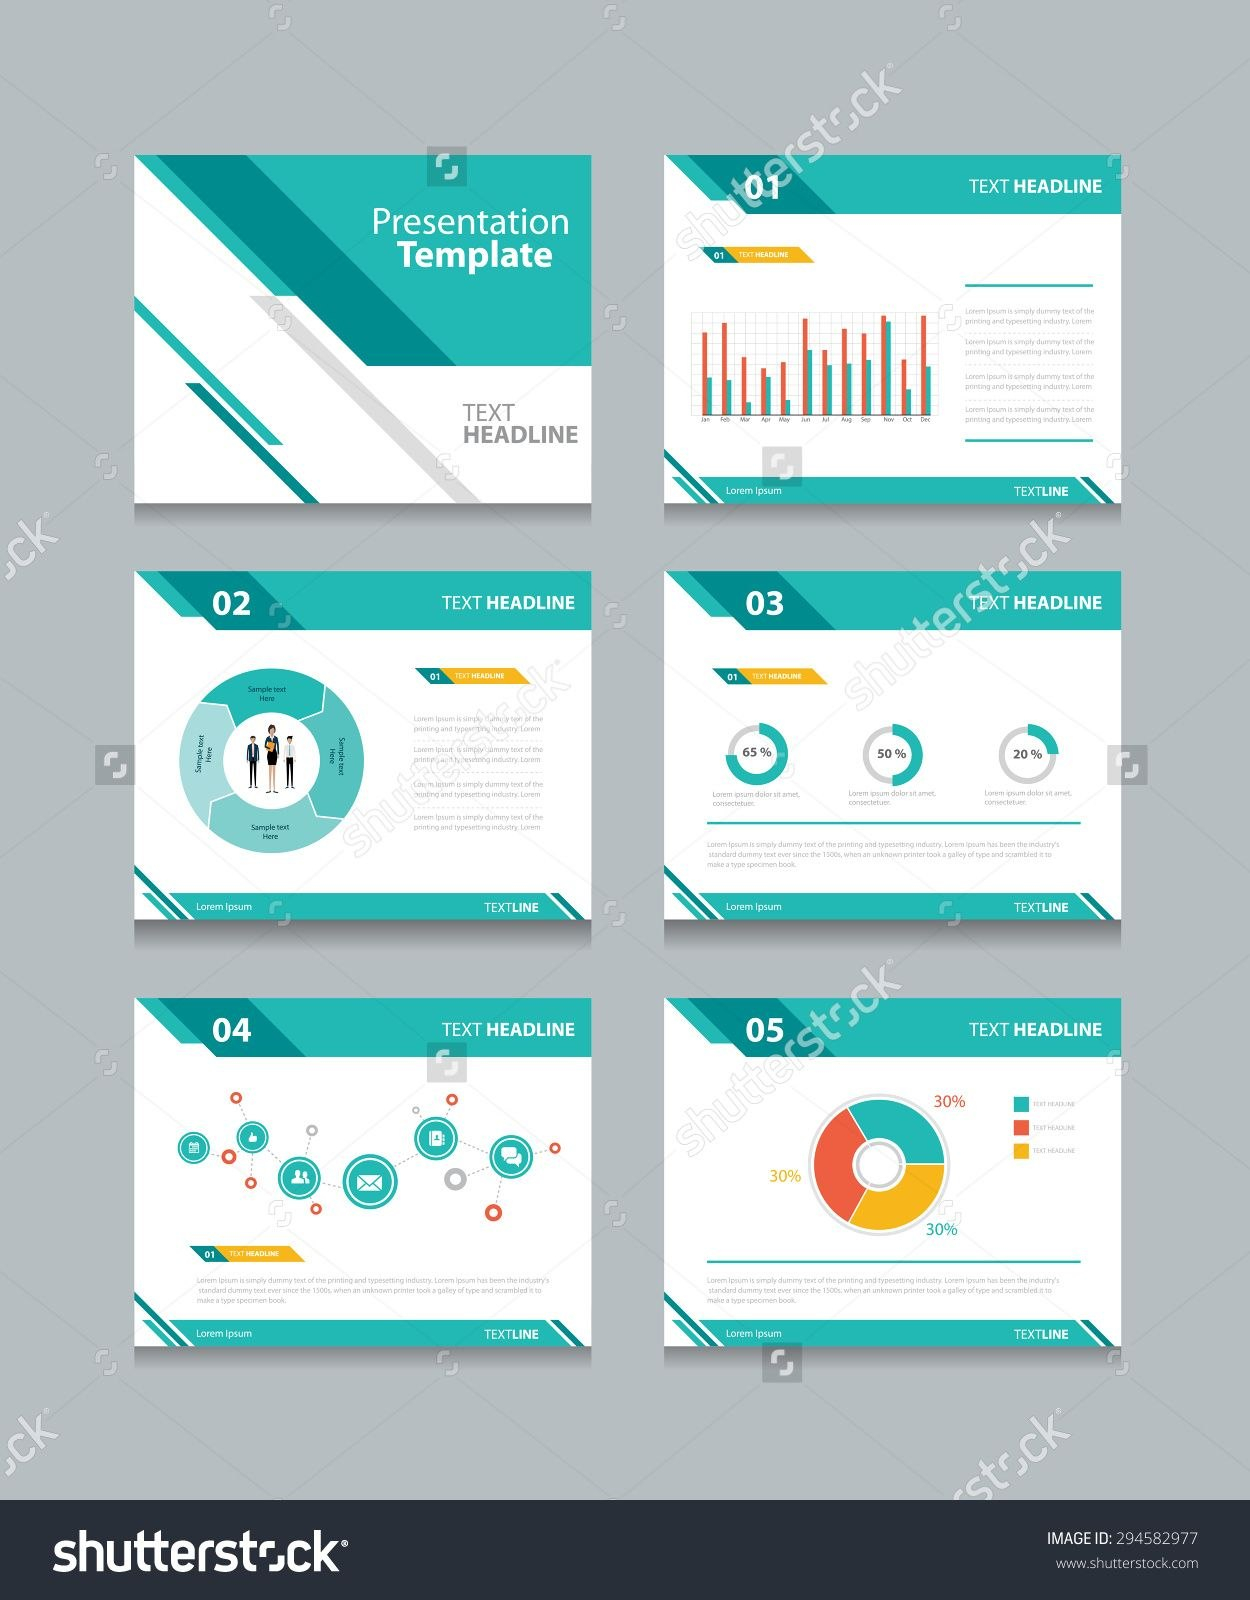 Business Presentation Template Setpowerpoint Template Design Pertaining To How To Change Powerpoint Template